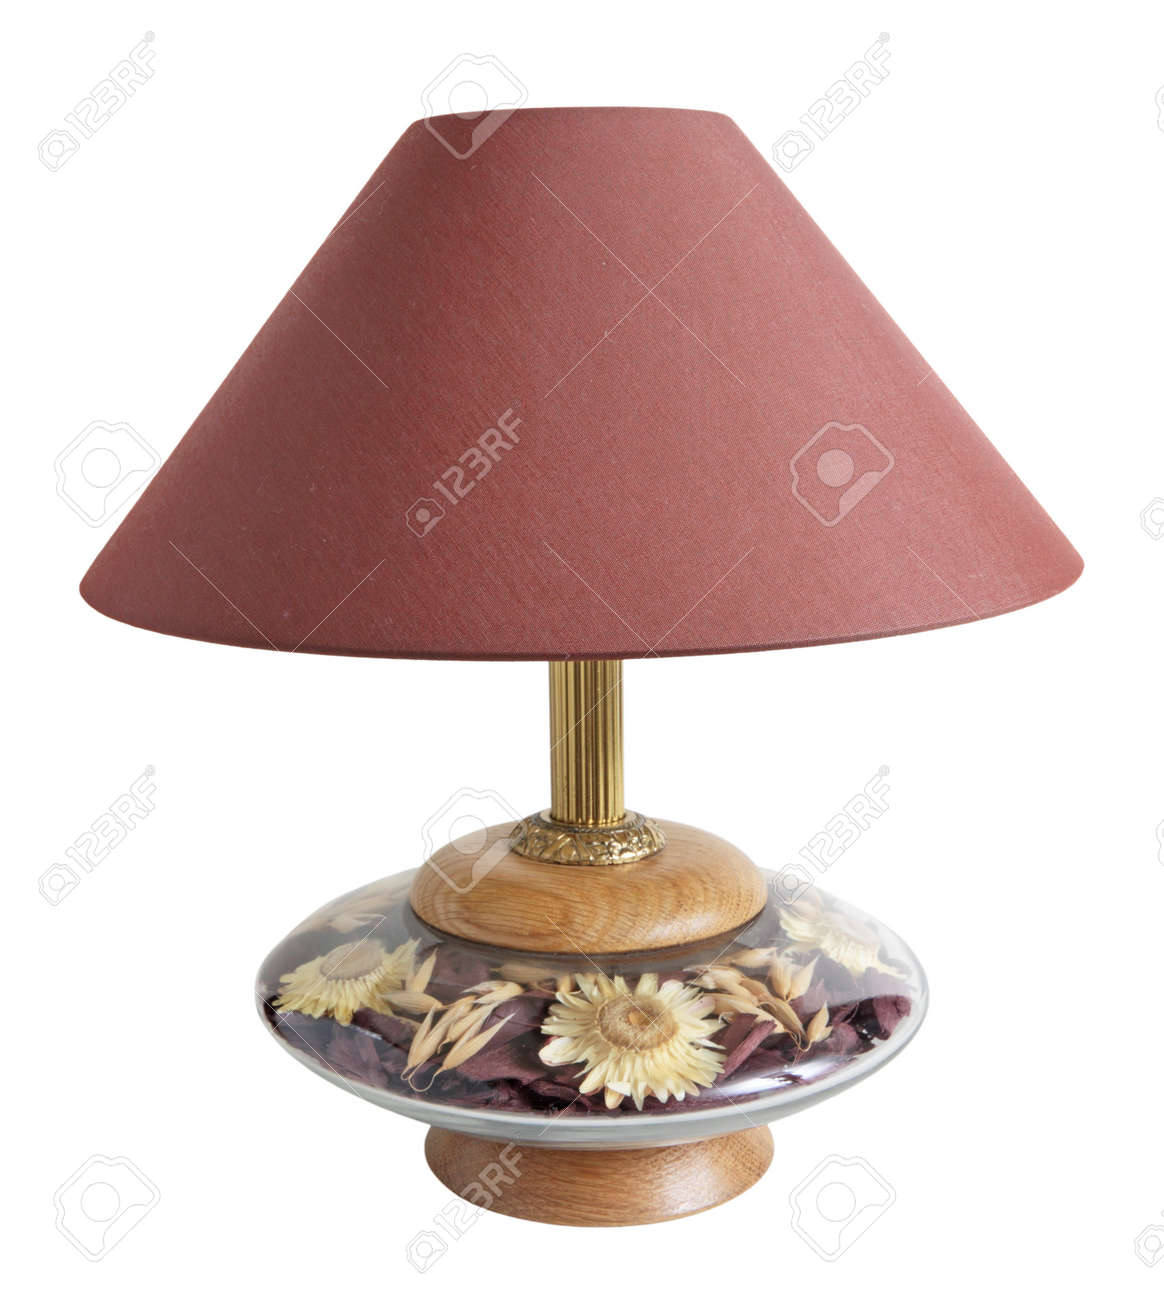 Desk lamp with a lamp shade, isolated on a white background Stock Photo - 22063967